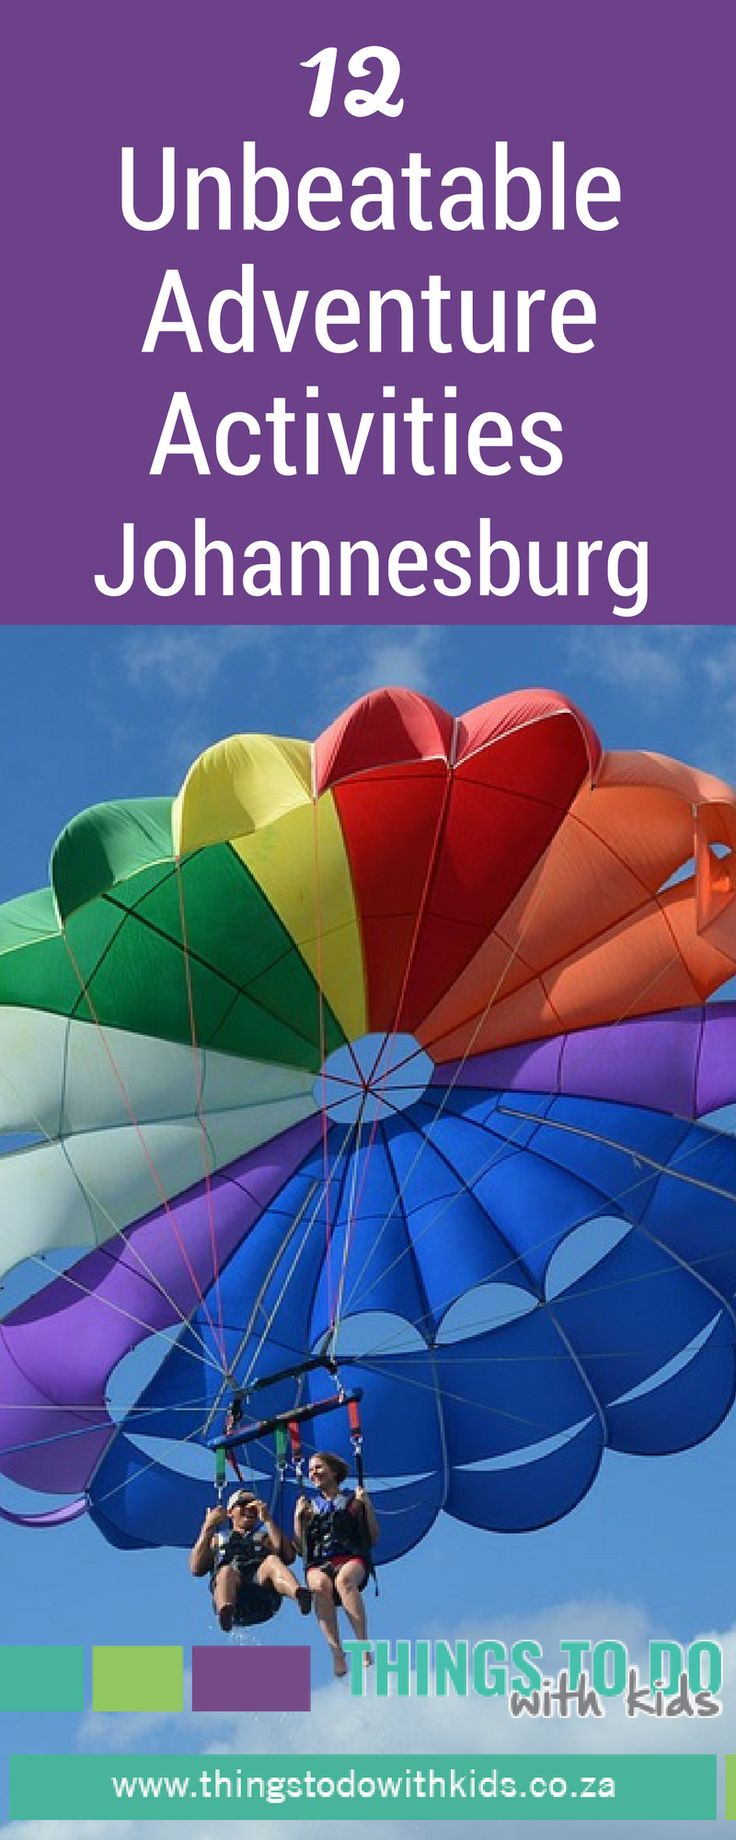 Affordable outdoor adventure activities in Johannesburg | Things to do outdoors in Johannesburg | Child-friendly outdoor venues | Johannesburg | South Africa | Outdoor Play Parks | Things to do with Kids | Excursions & Activities